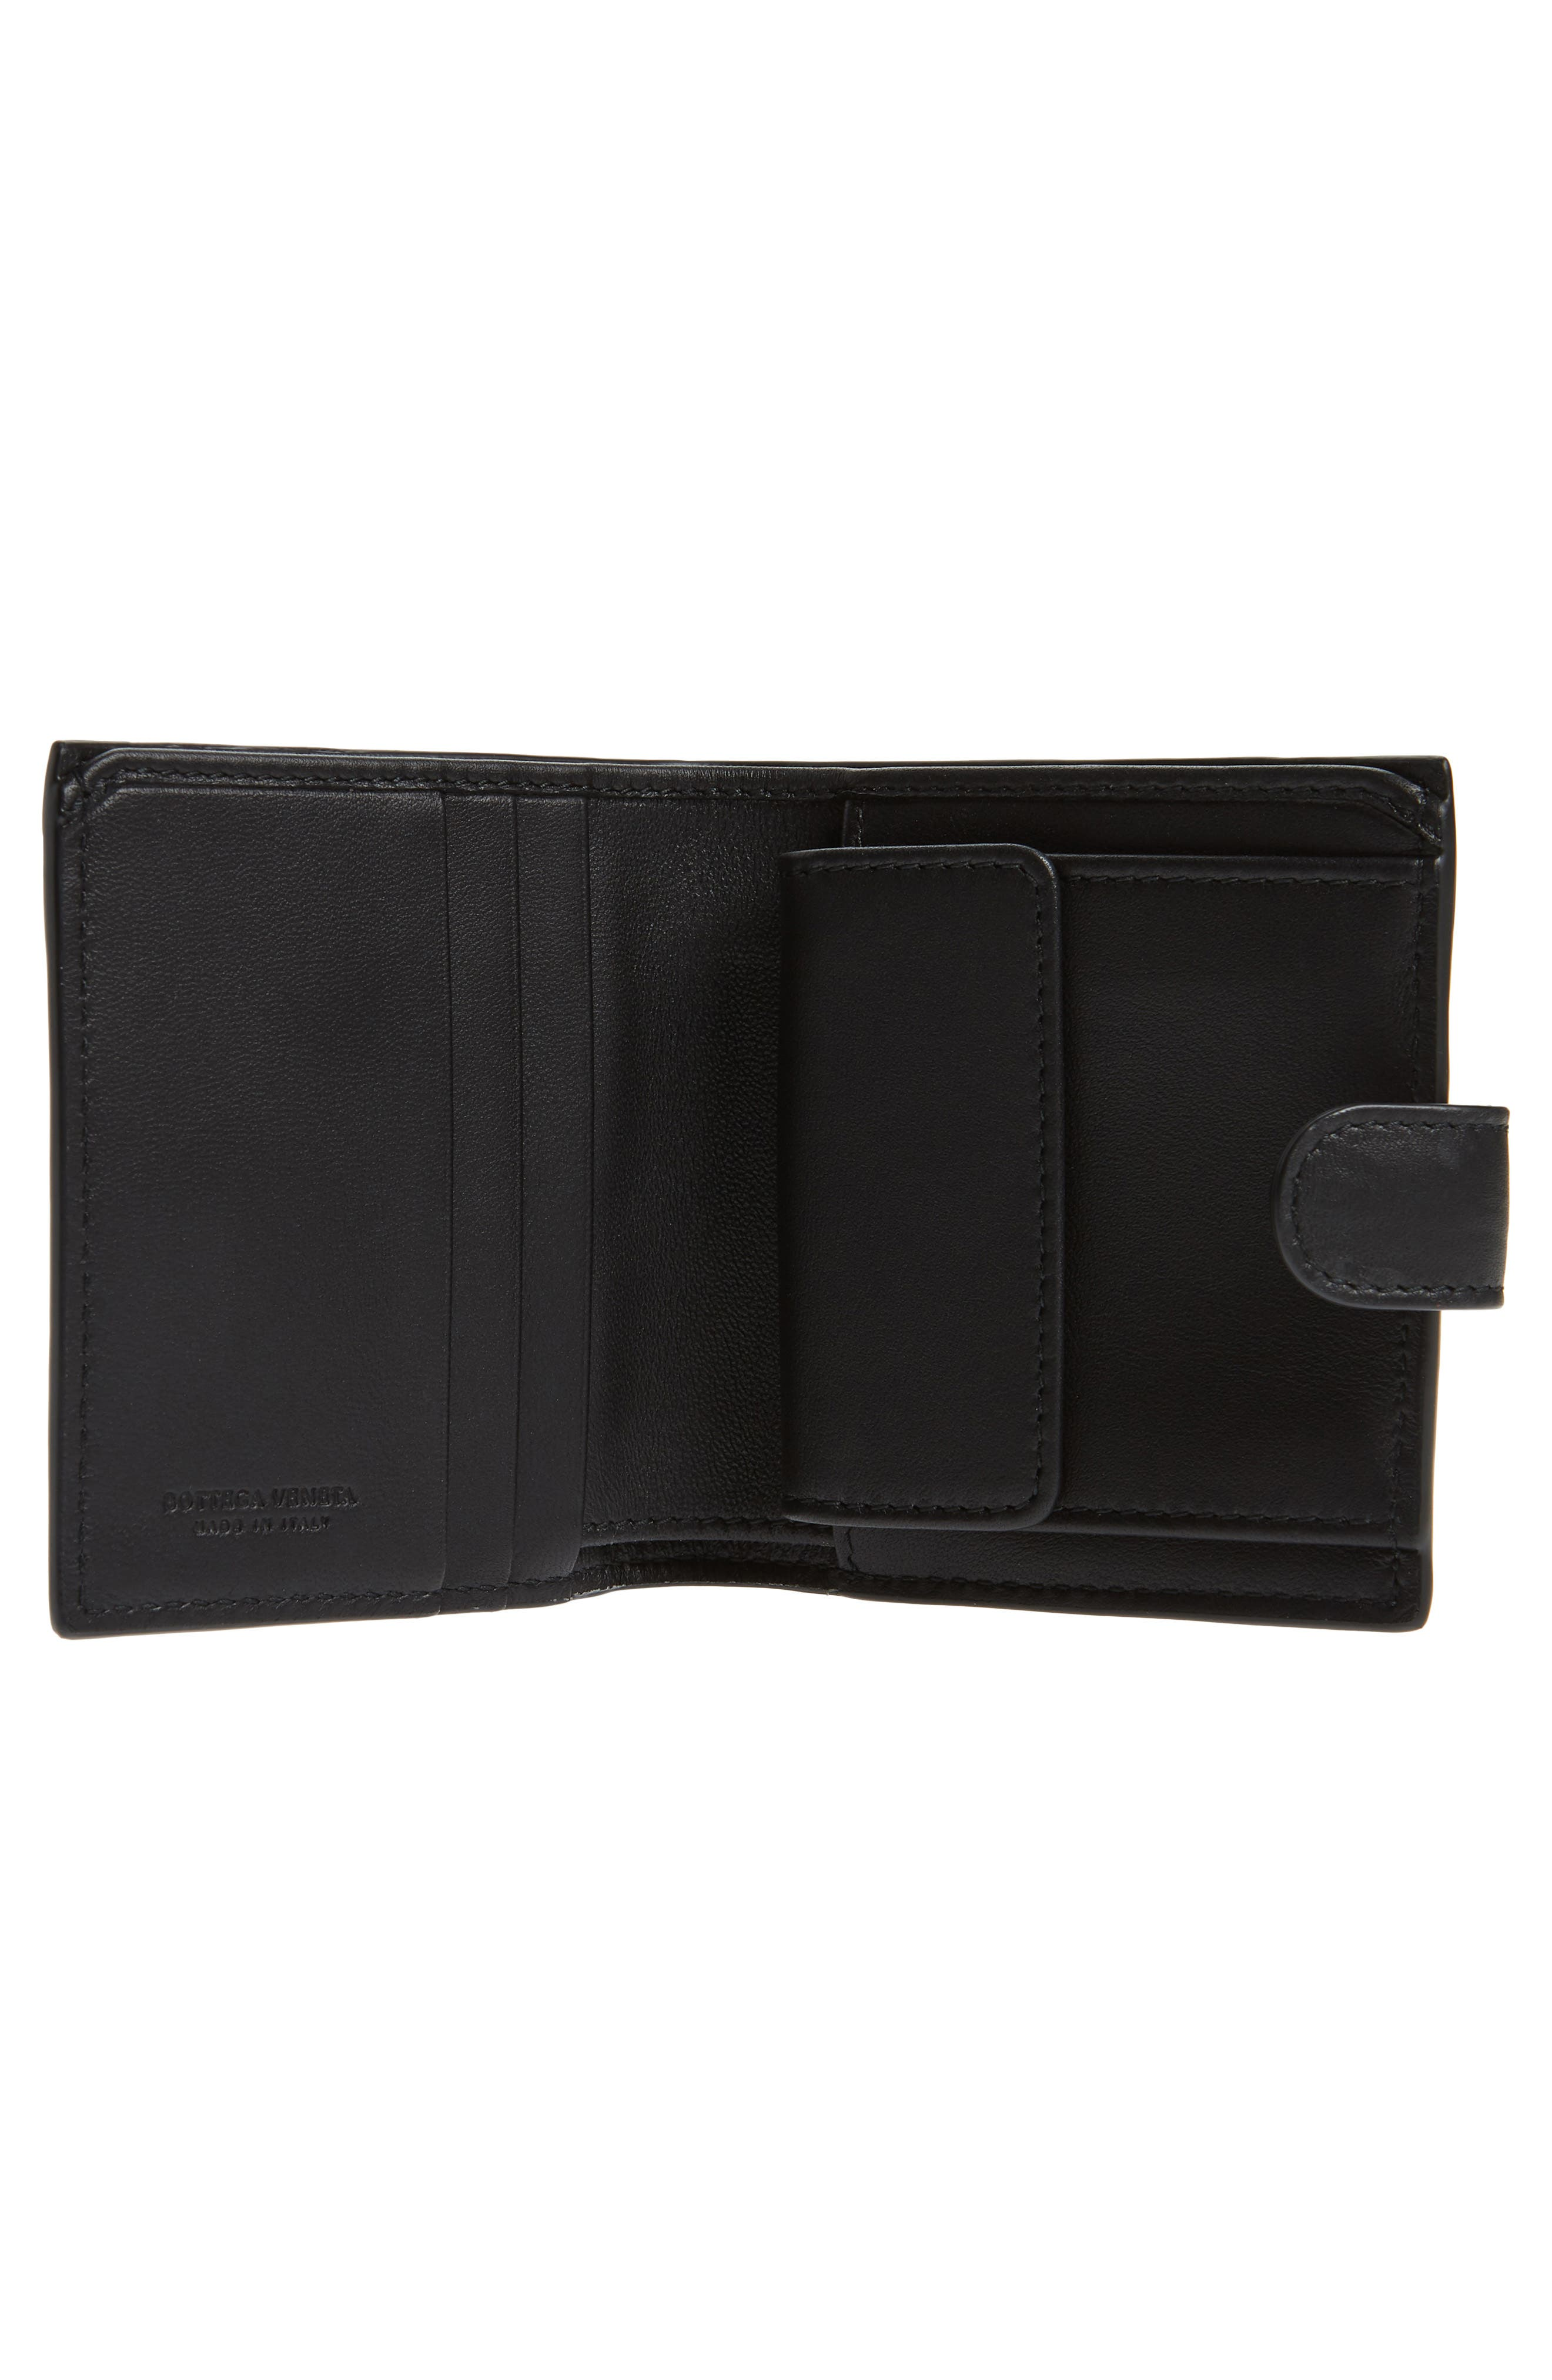 Intrecciato Leather French Wallet,                             Alternate thumbnail 2, color,                             BLACK